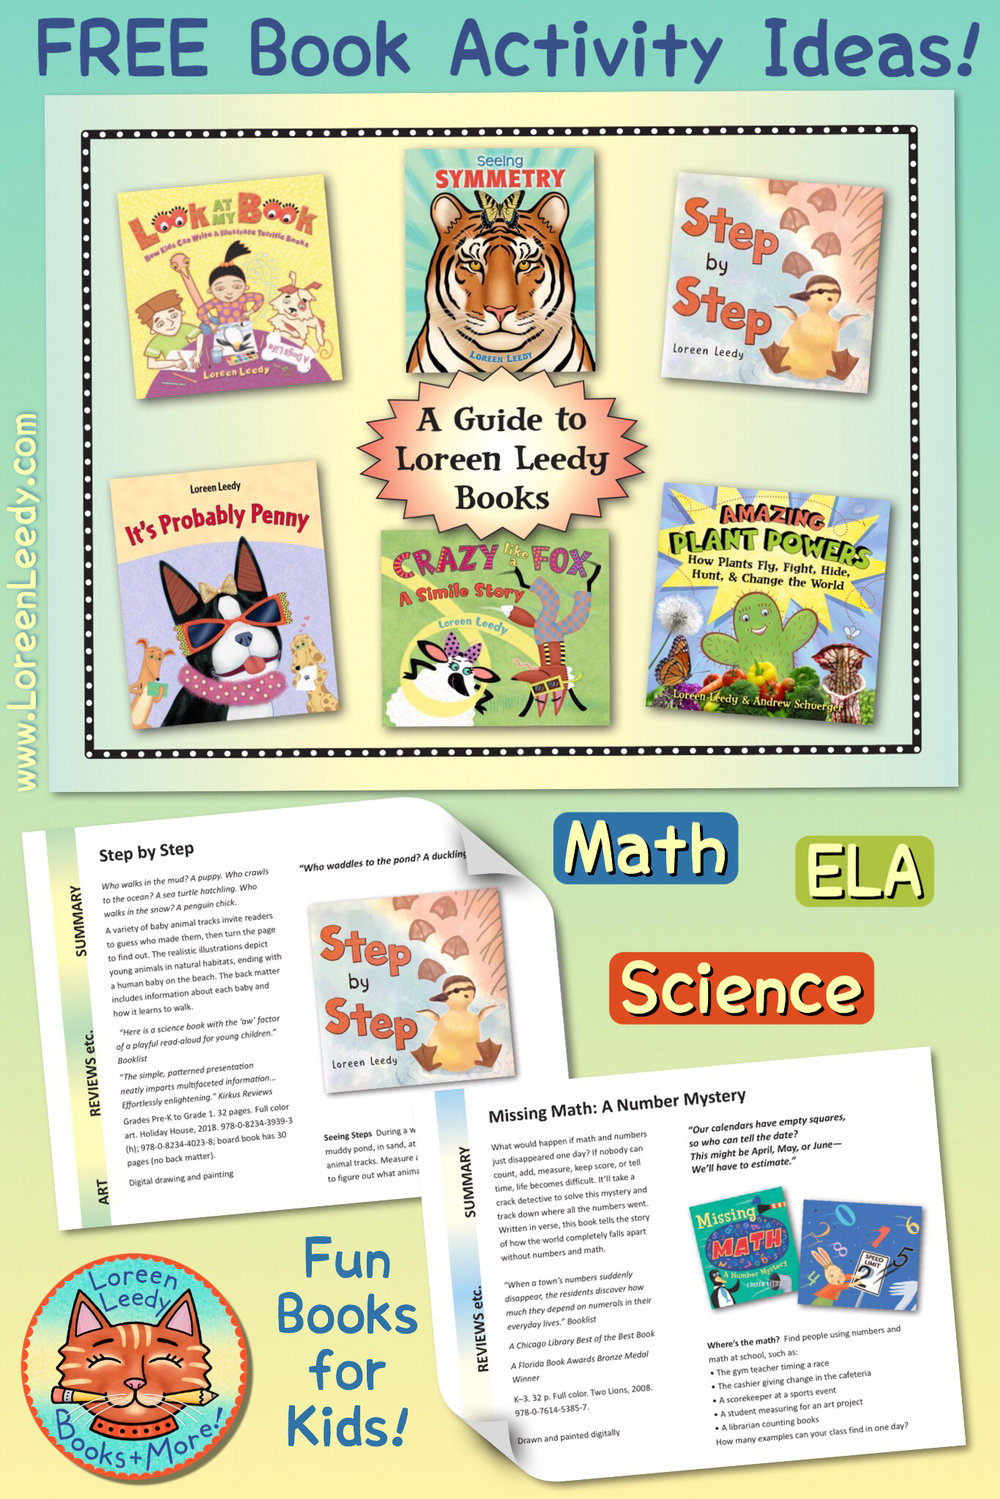 Free guide to children's books with math, science, and language arts content by Loreen Leedy